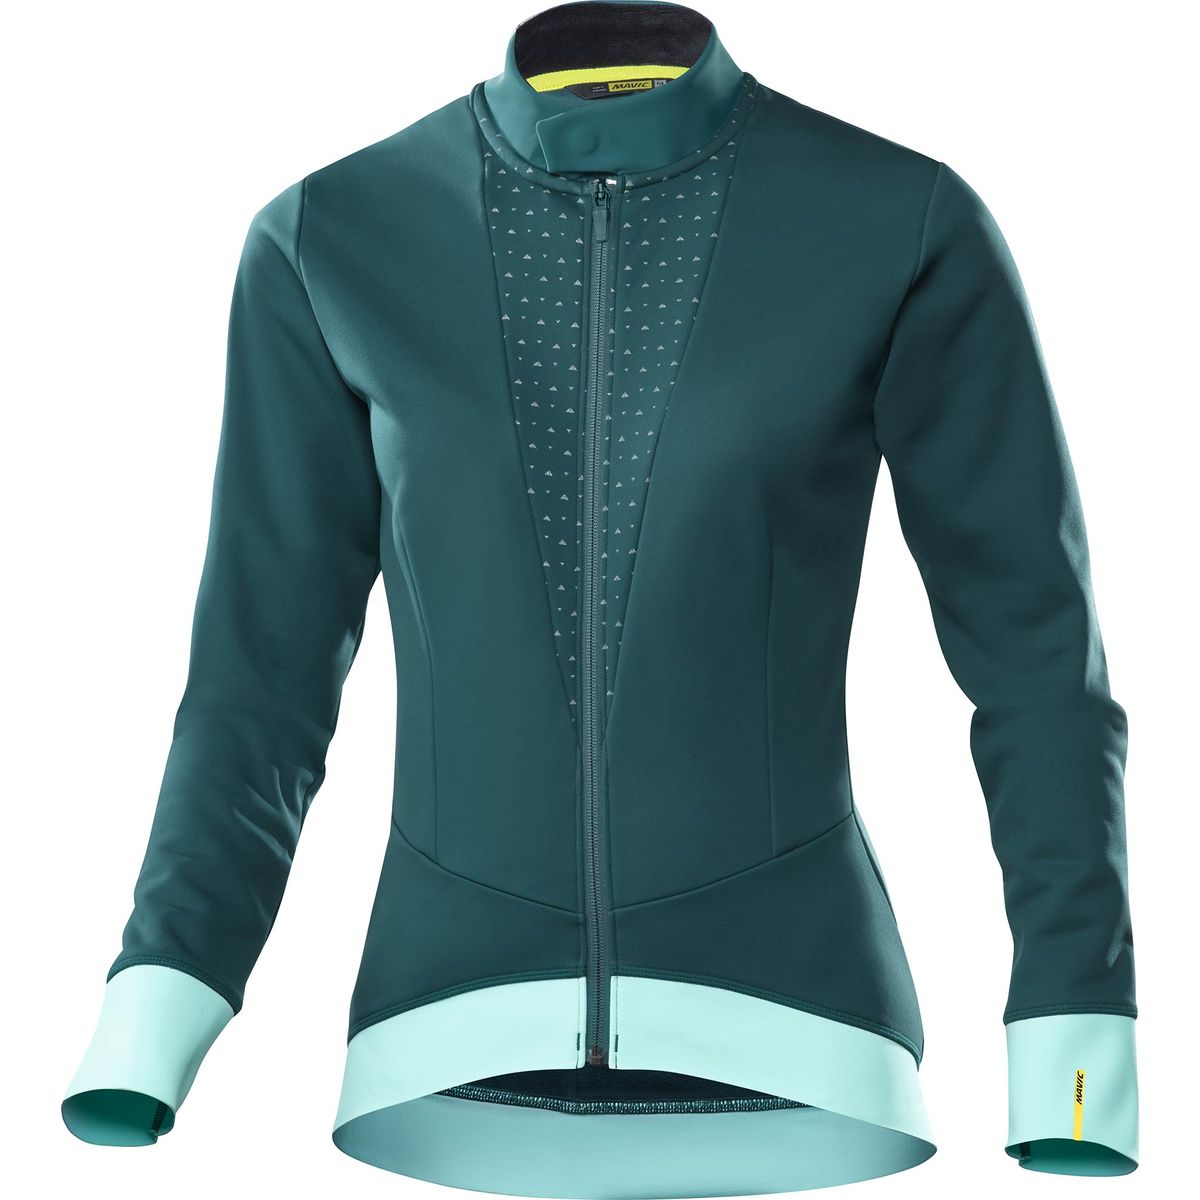 SEQUENCE Wind Jacket Damen Windschutz Thermojacke